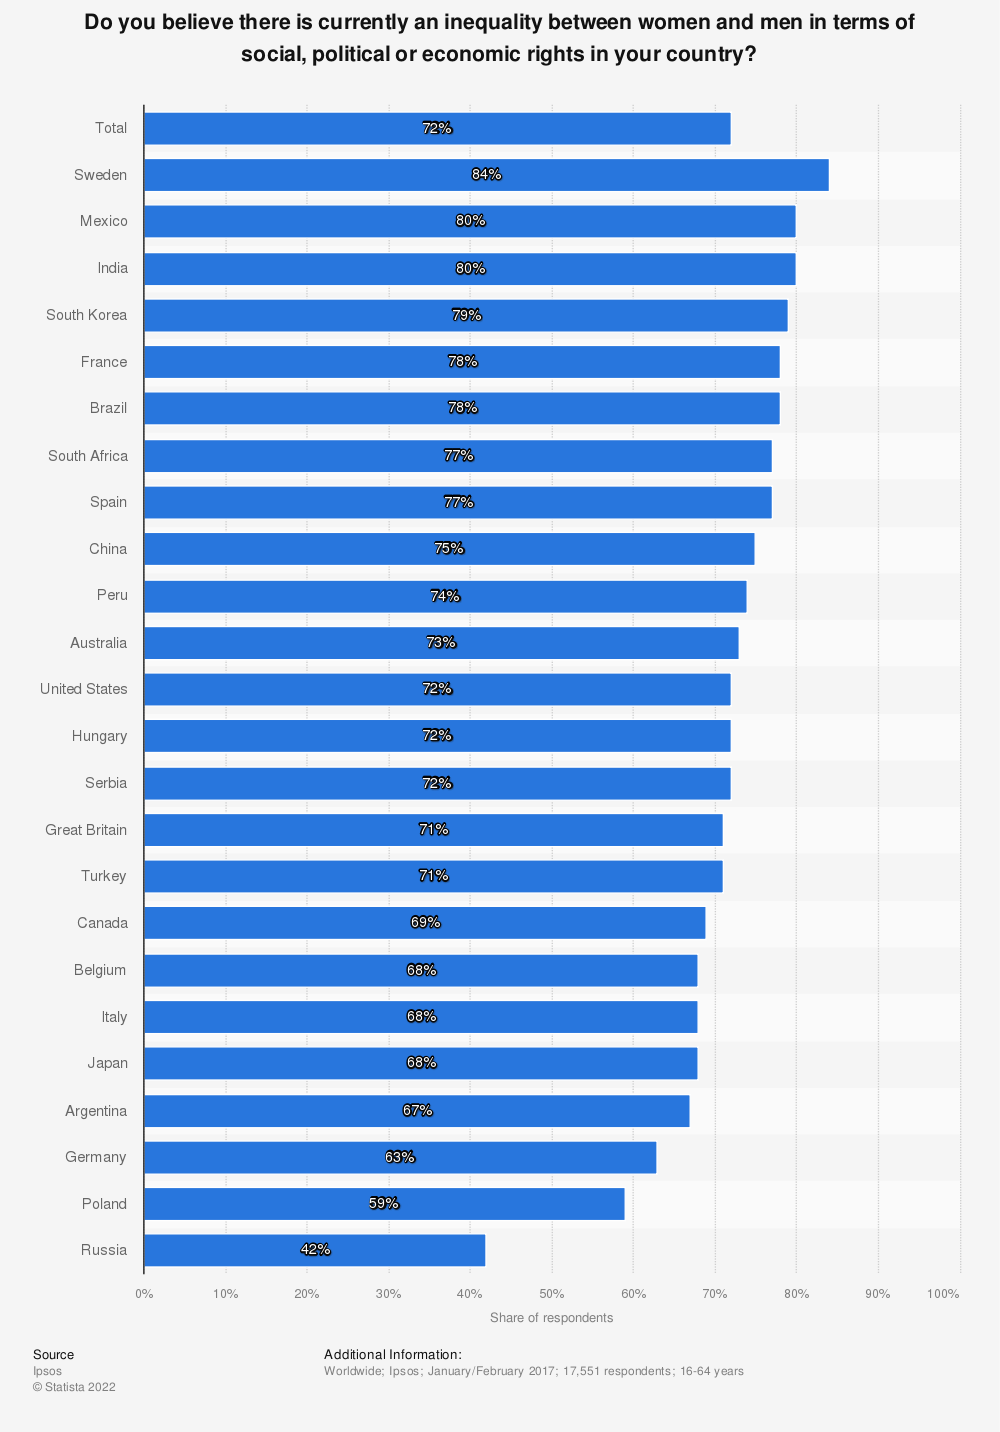 Statistic: Do you believe there is currently an inequality between women and men in terms of social, political or economic rights in your country? | Statista